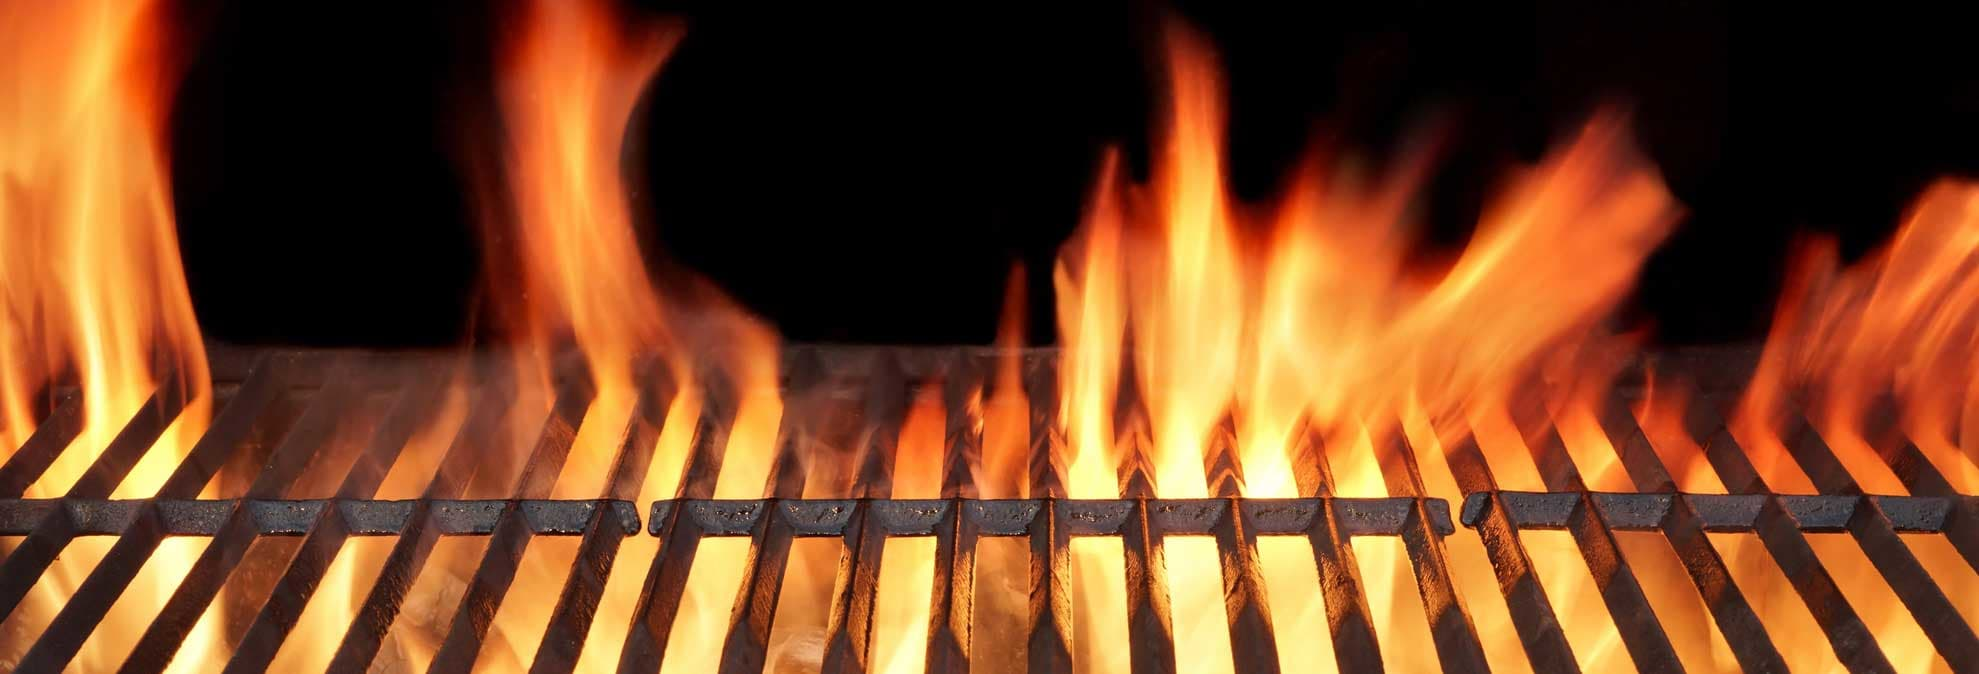 Used Car Batteries >> Is Your Grill Hot Enough? - Consumer Reports